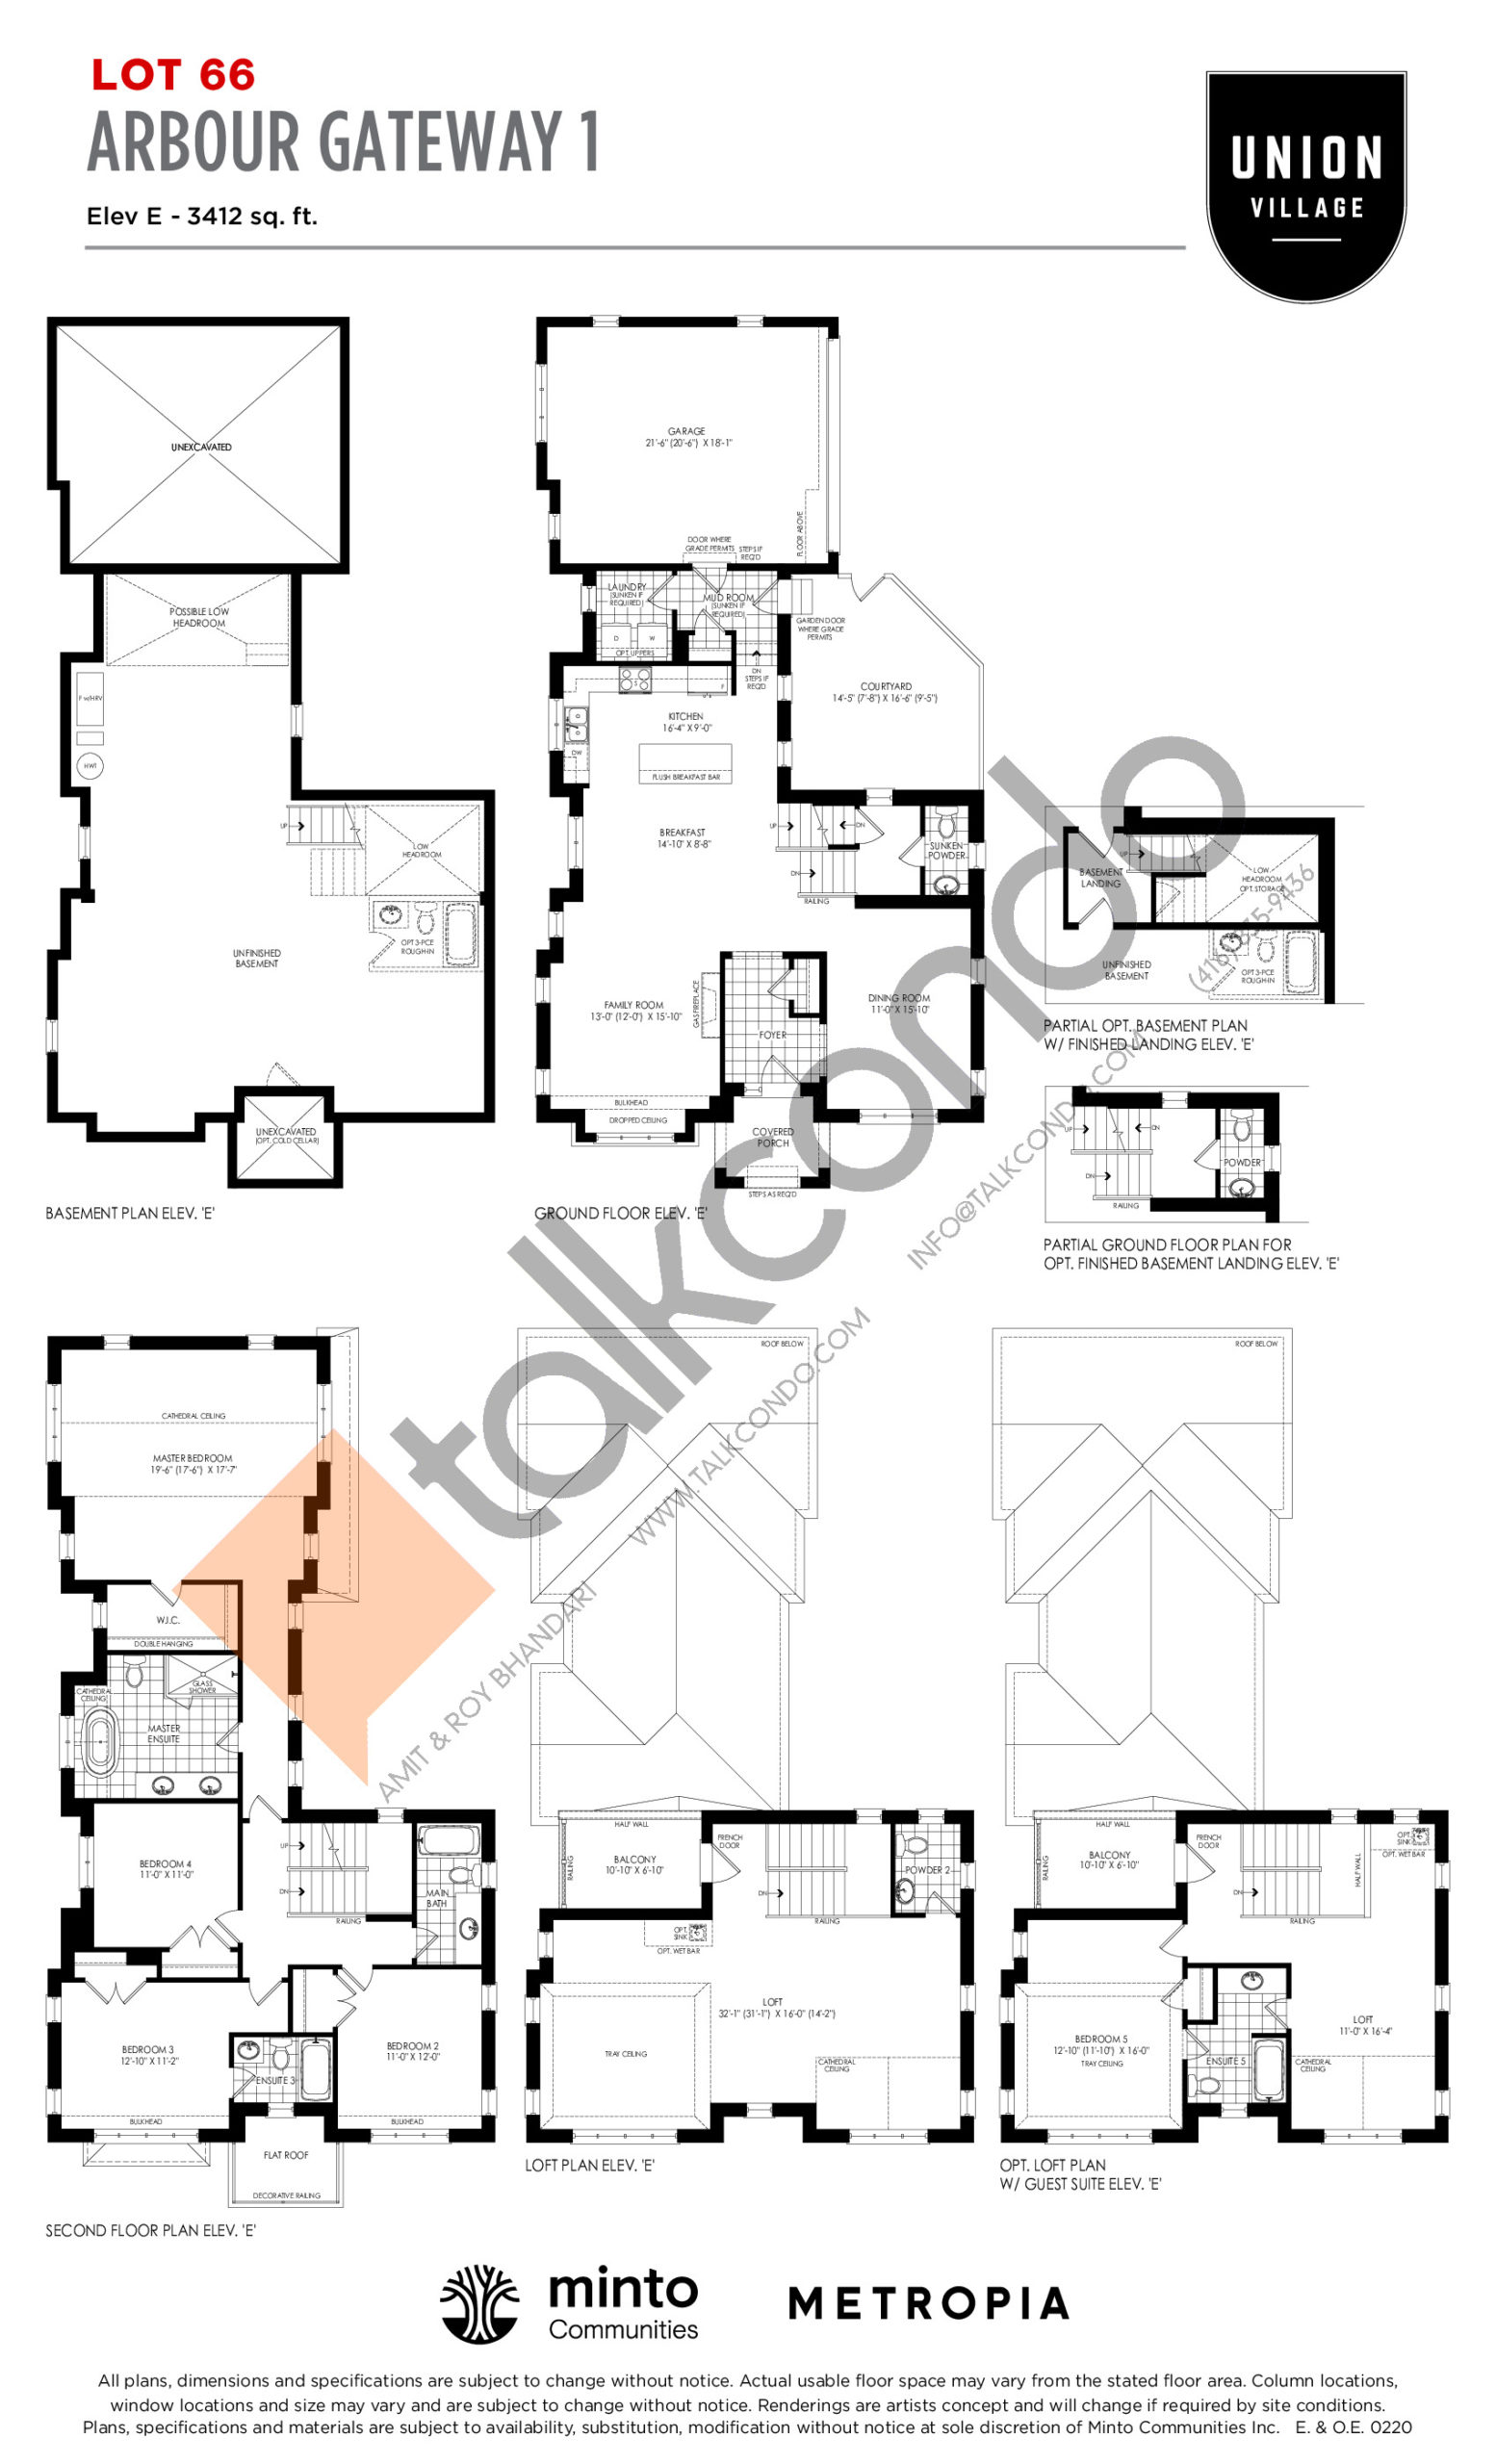 Arbour Gateway 1 Elev E - The Rosewood Collection Floor Plan at Union Village - 3412 sq.ft